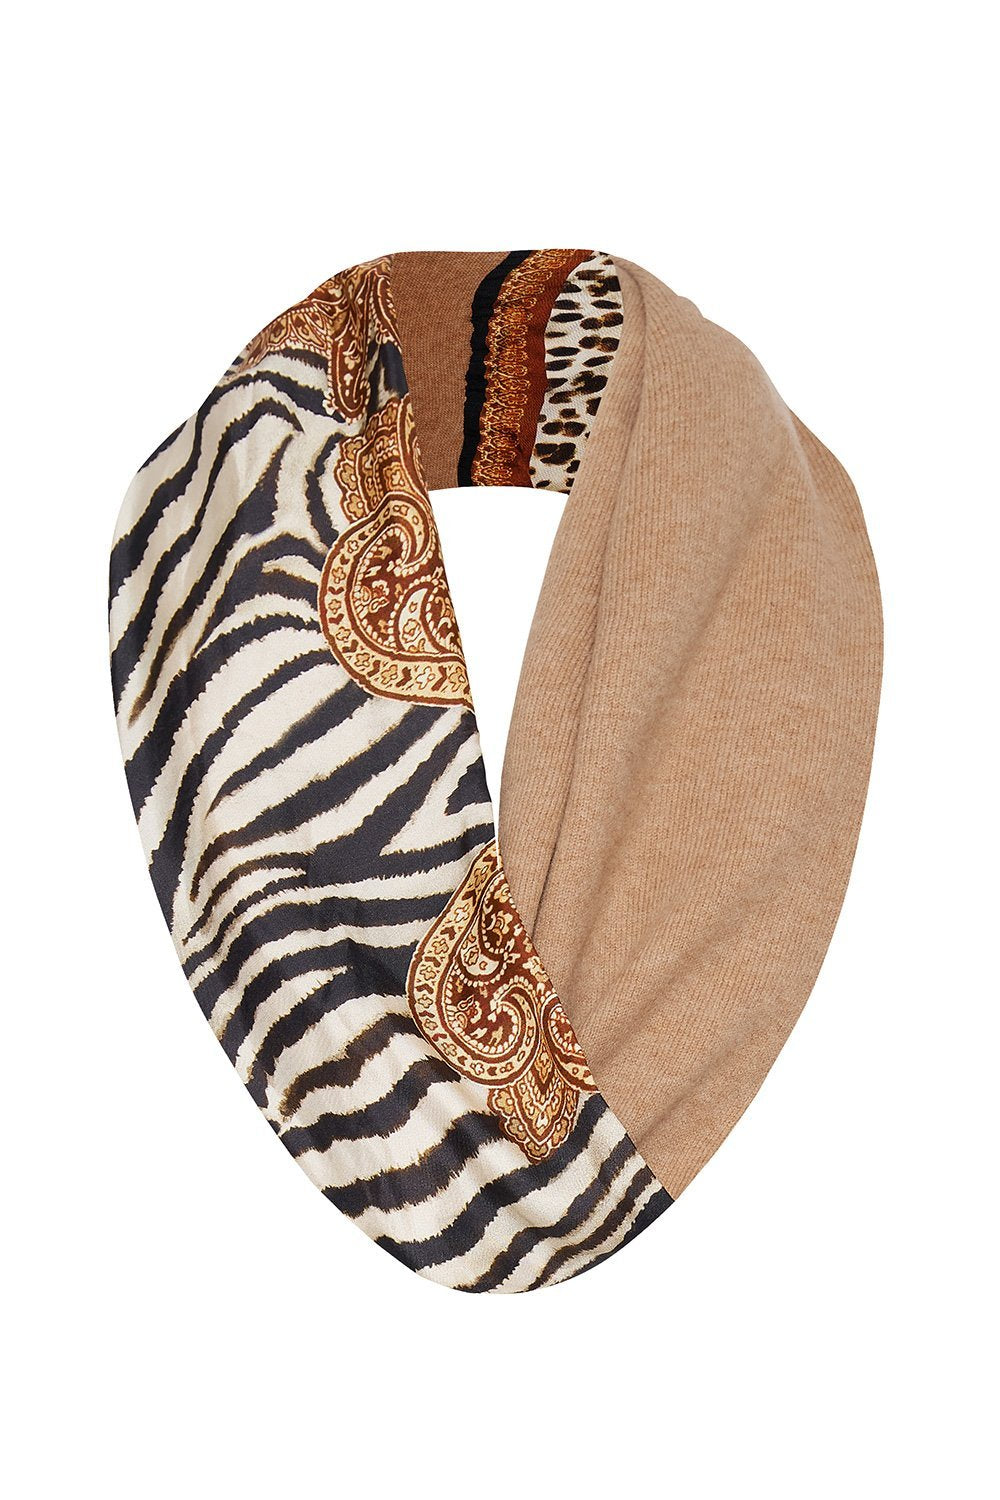 DOUBLE SIDED SCARF WILD FIRE